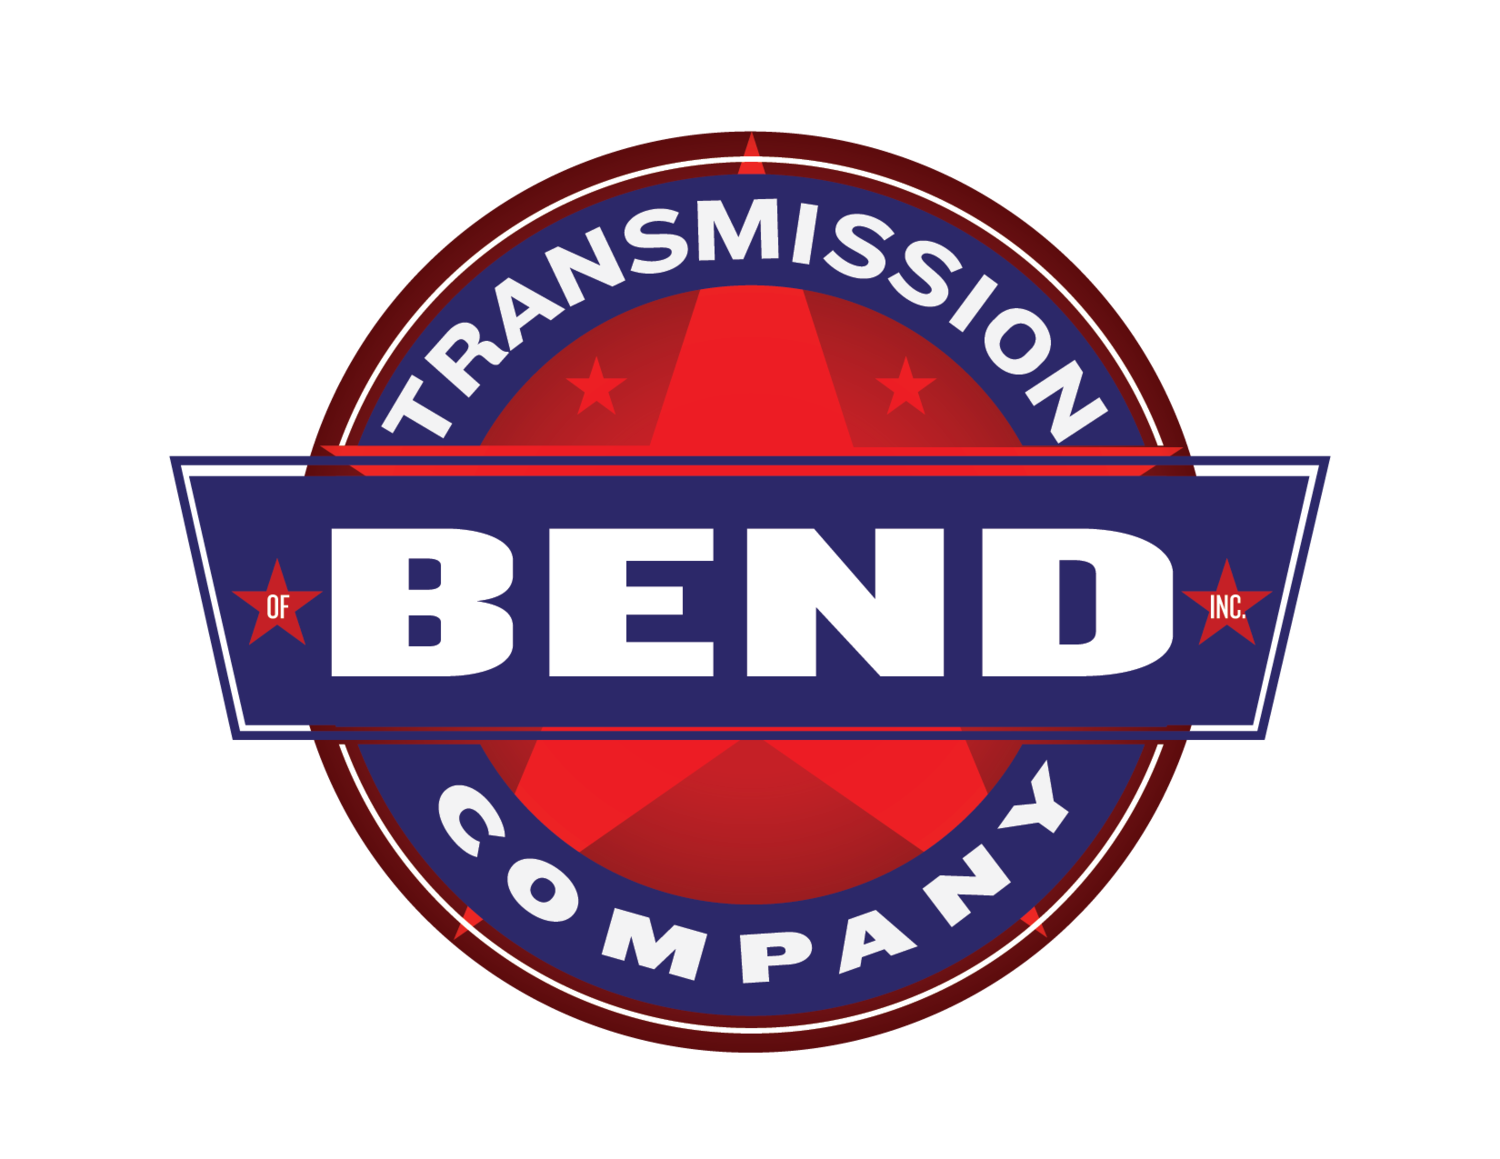 Transmission Company of Bend